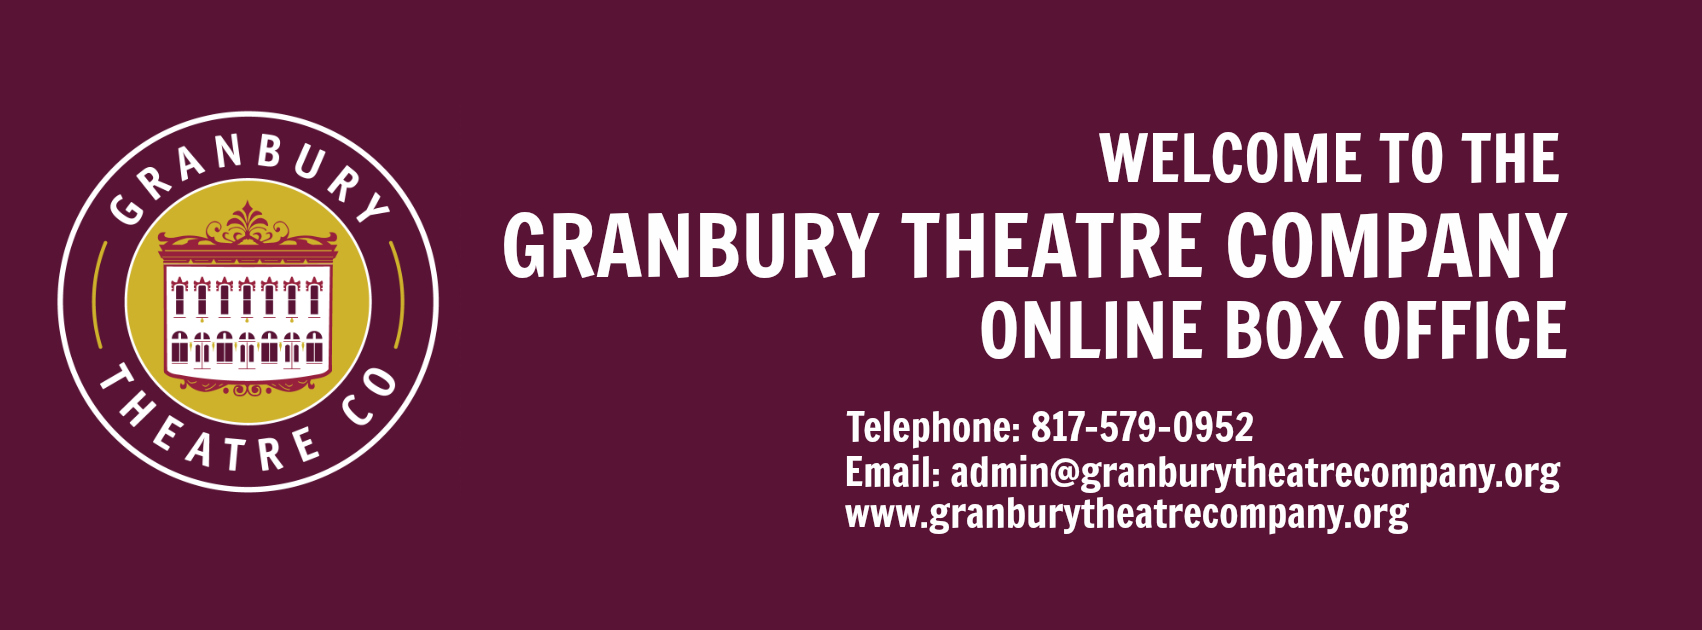 Granbury Theatre Company Box Office